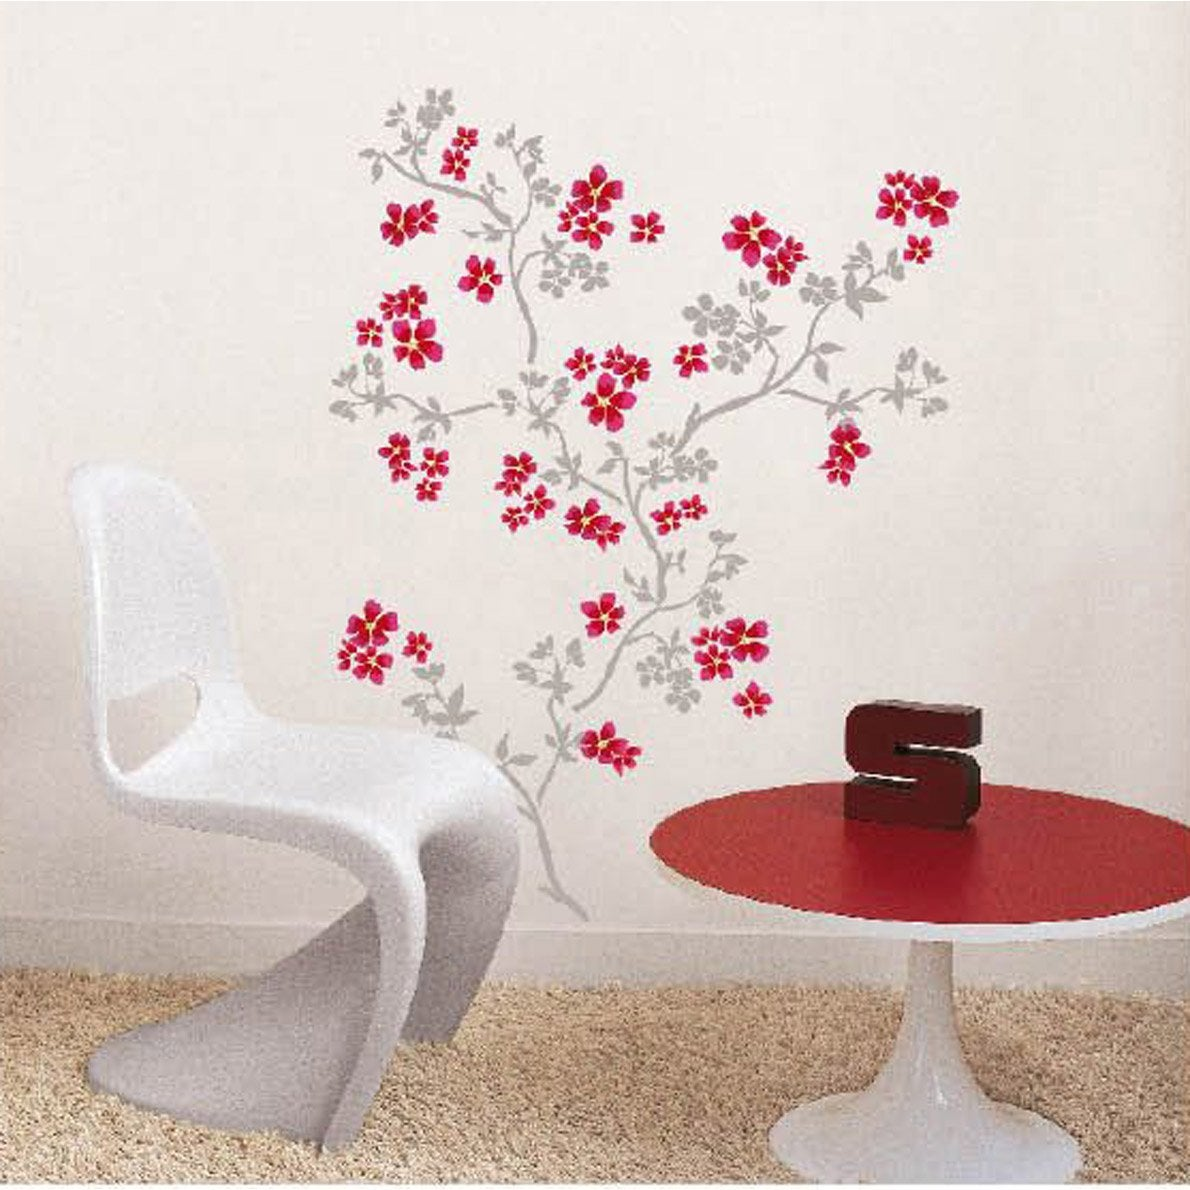 sticker cerisier du japon 49 cm x 69 cm leroy merlin. Black Bedroom Furniture Sets. Home Design Ideas